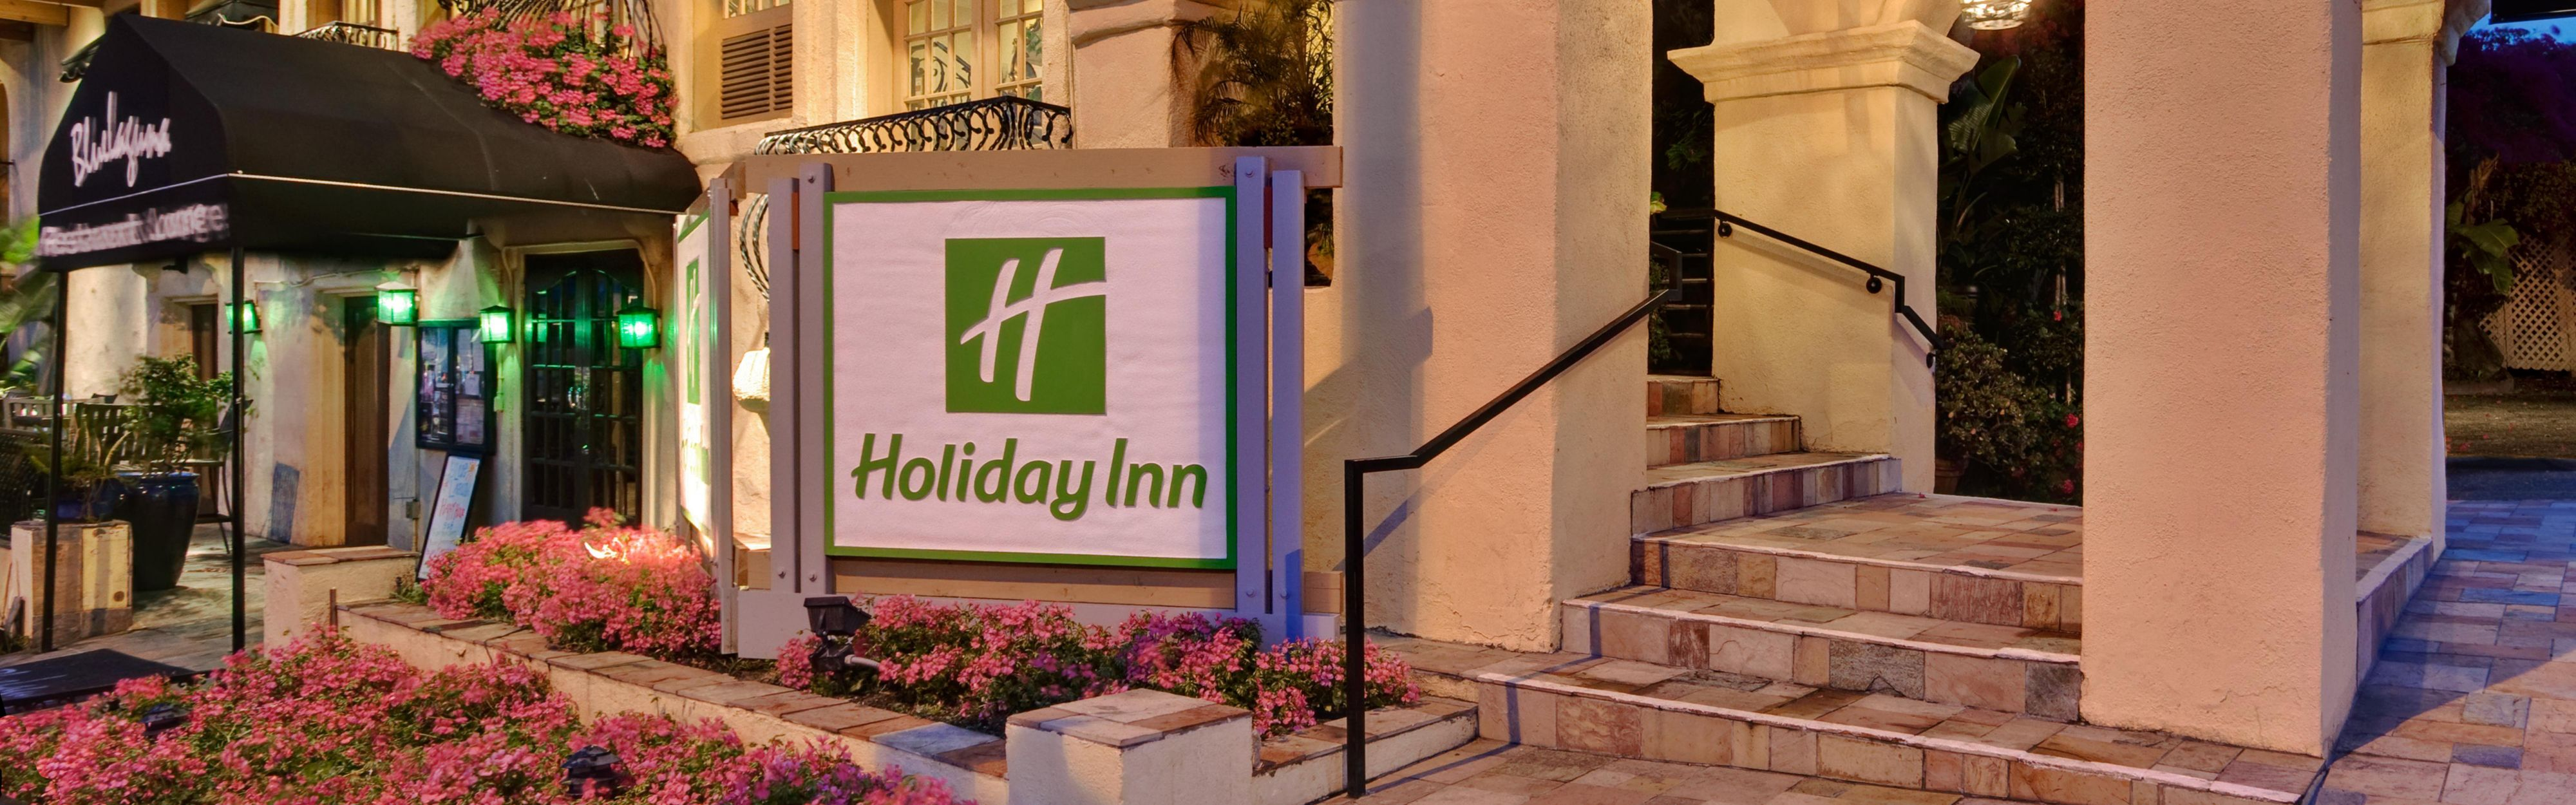 Hotel Exterior Holiday Inn Laguna